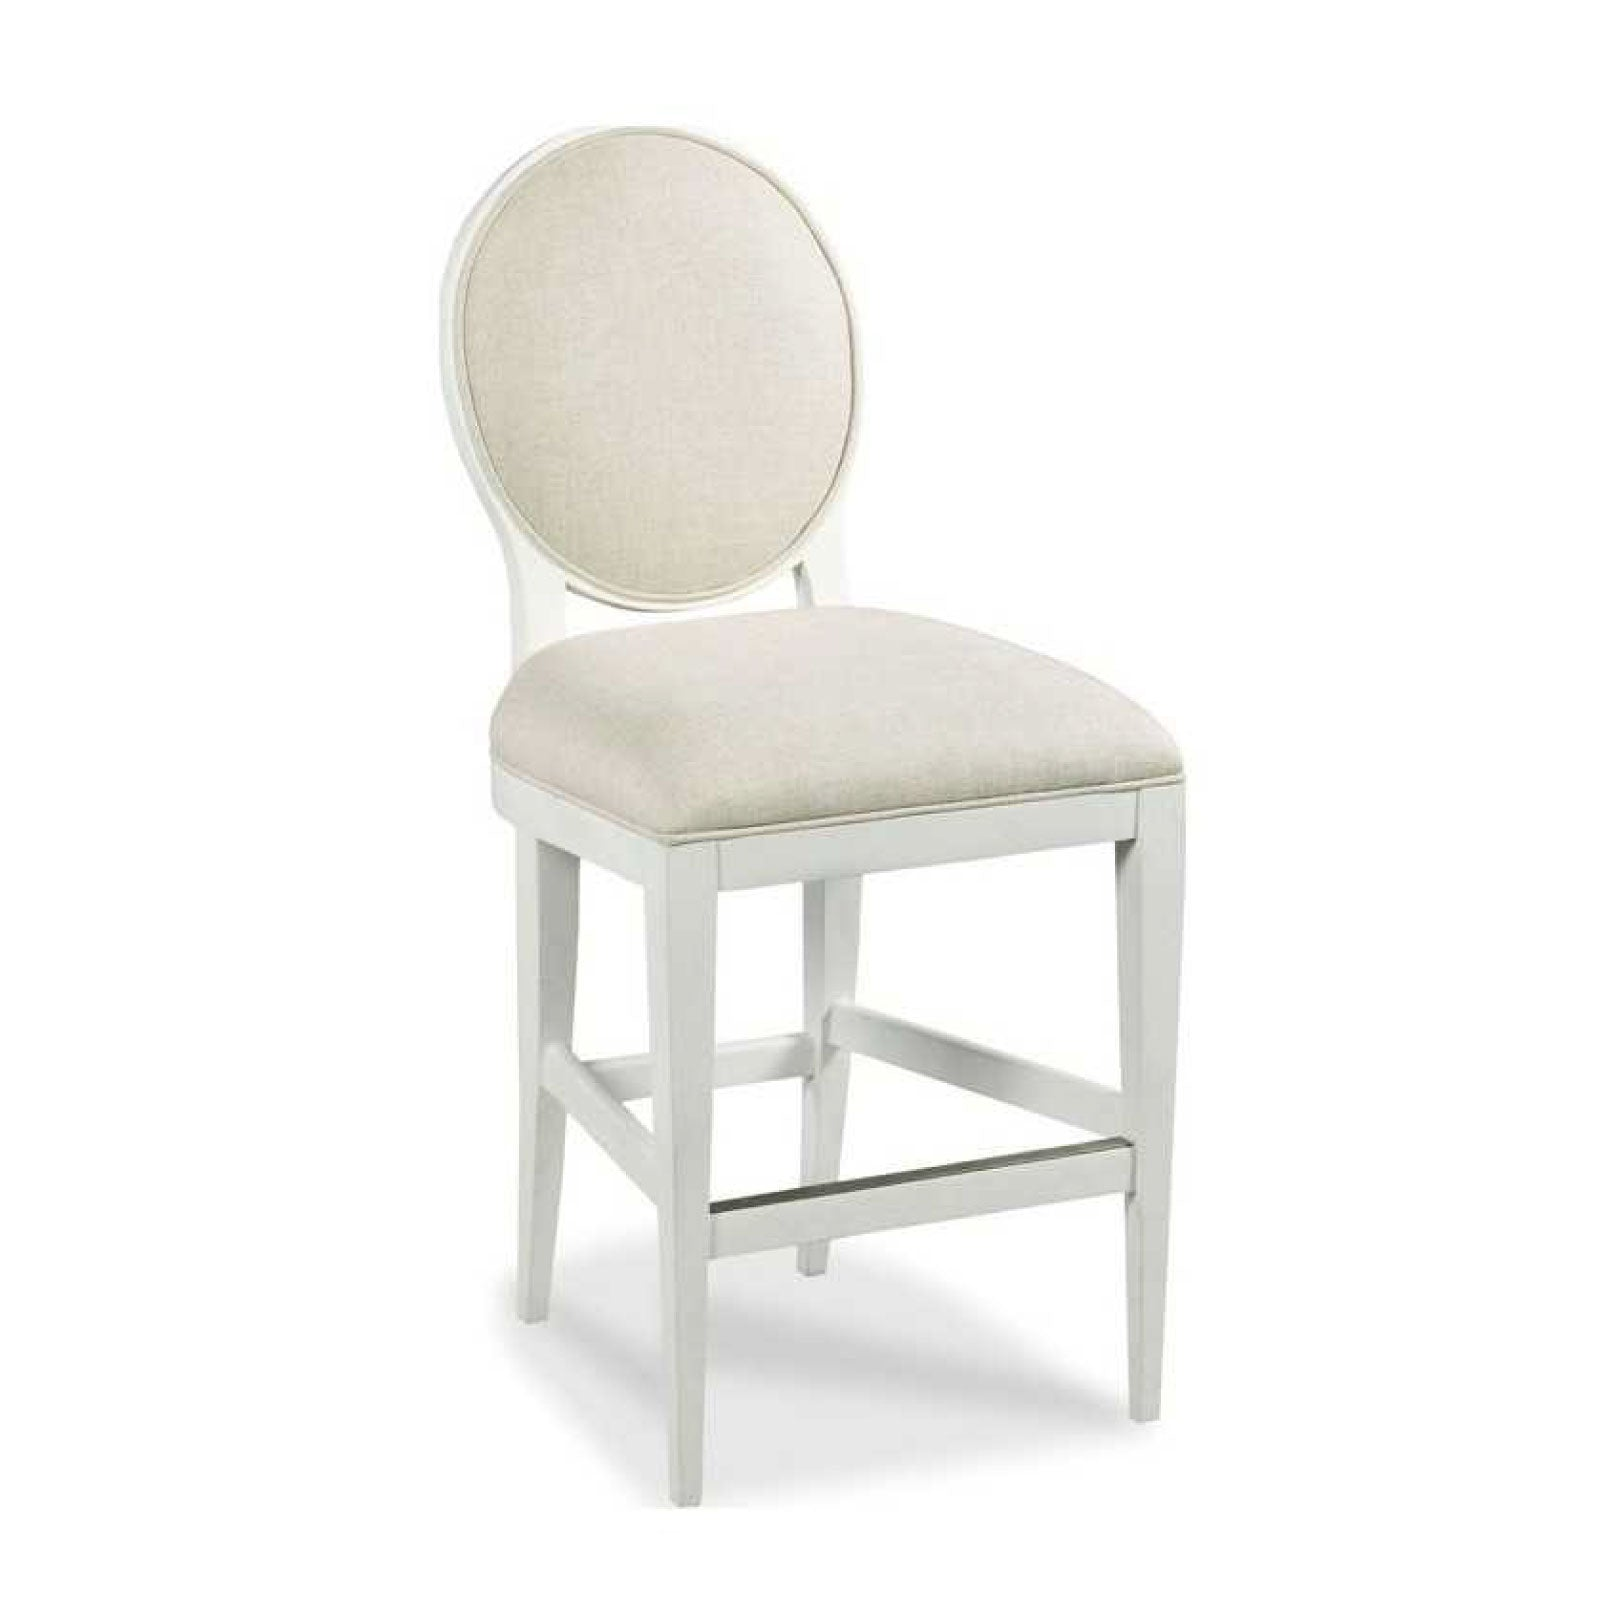 Mirror Counter Stool